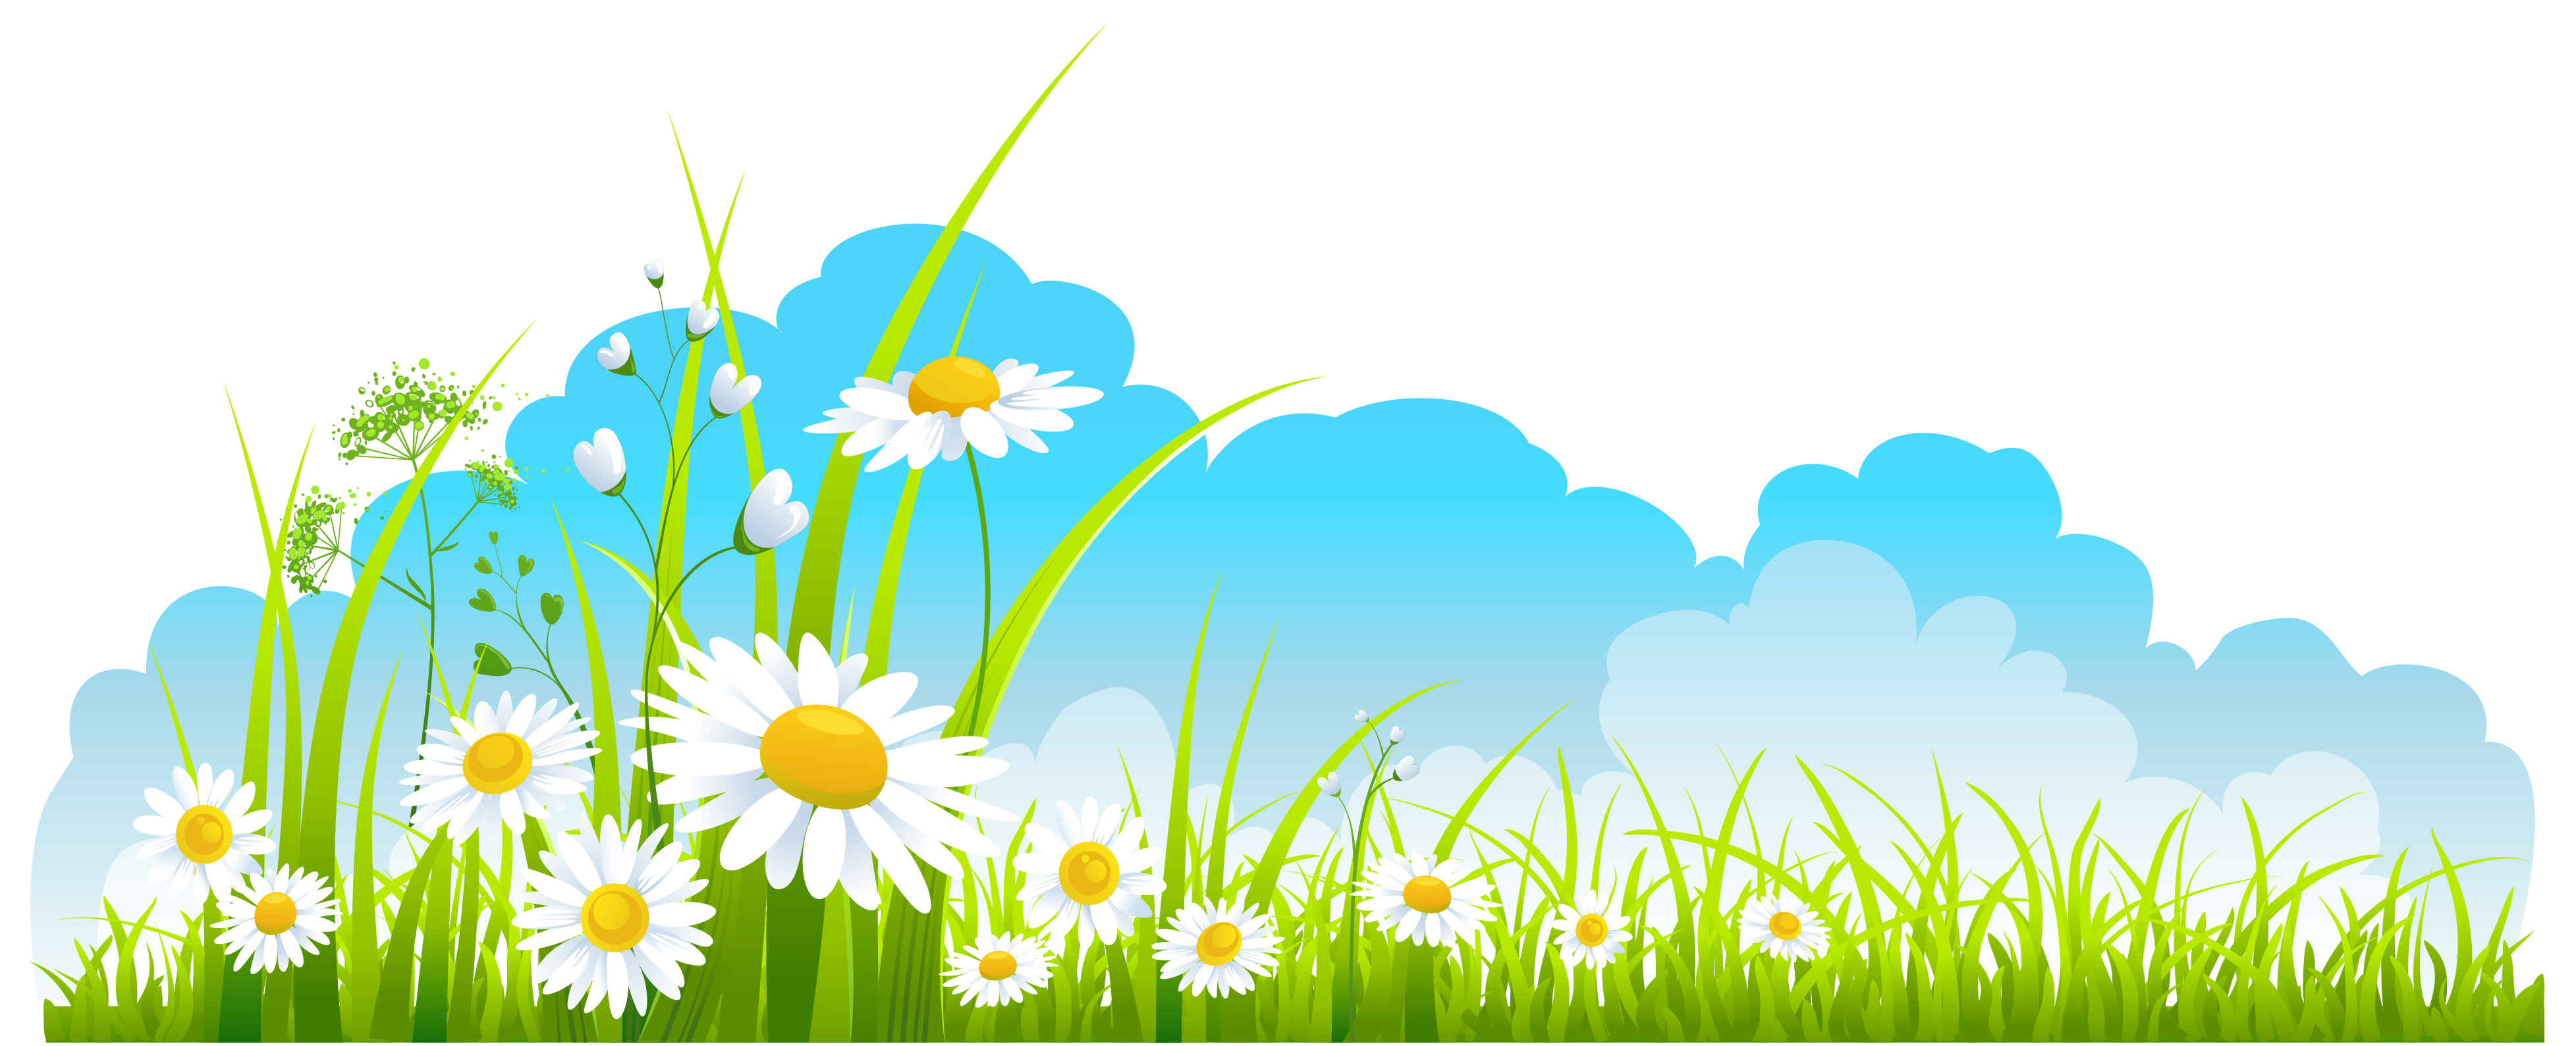 Flowers Sky Background Clipart.